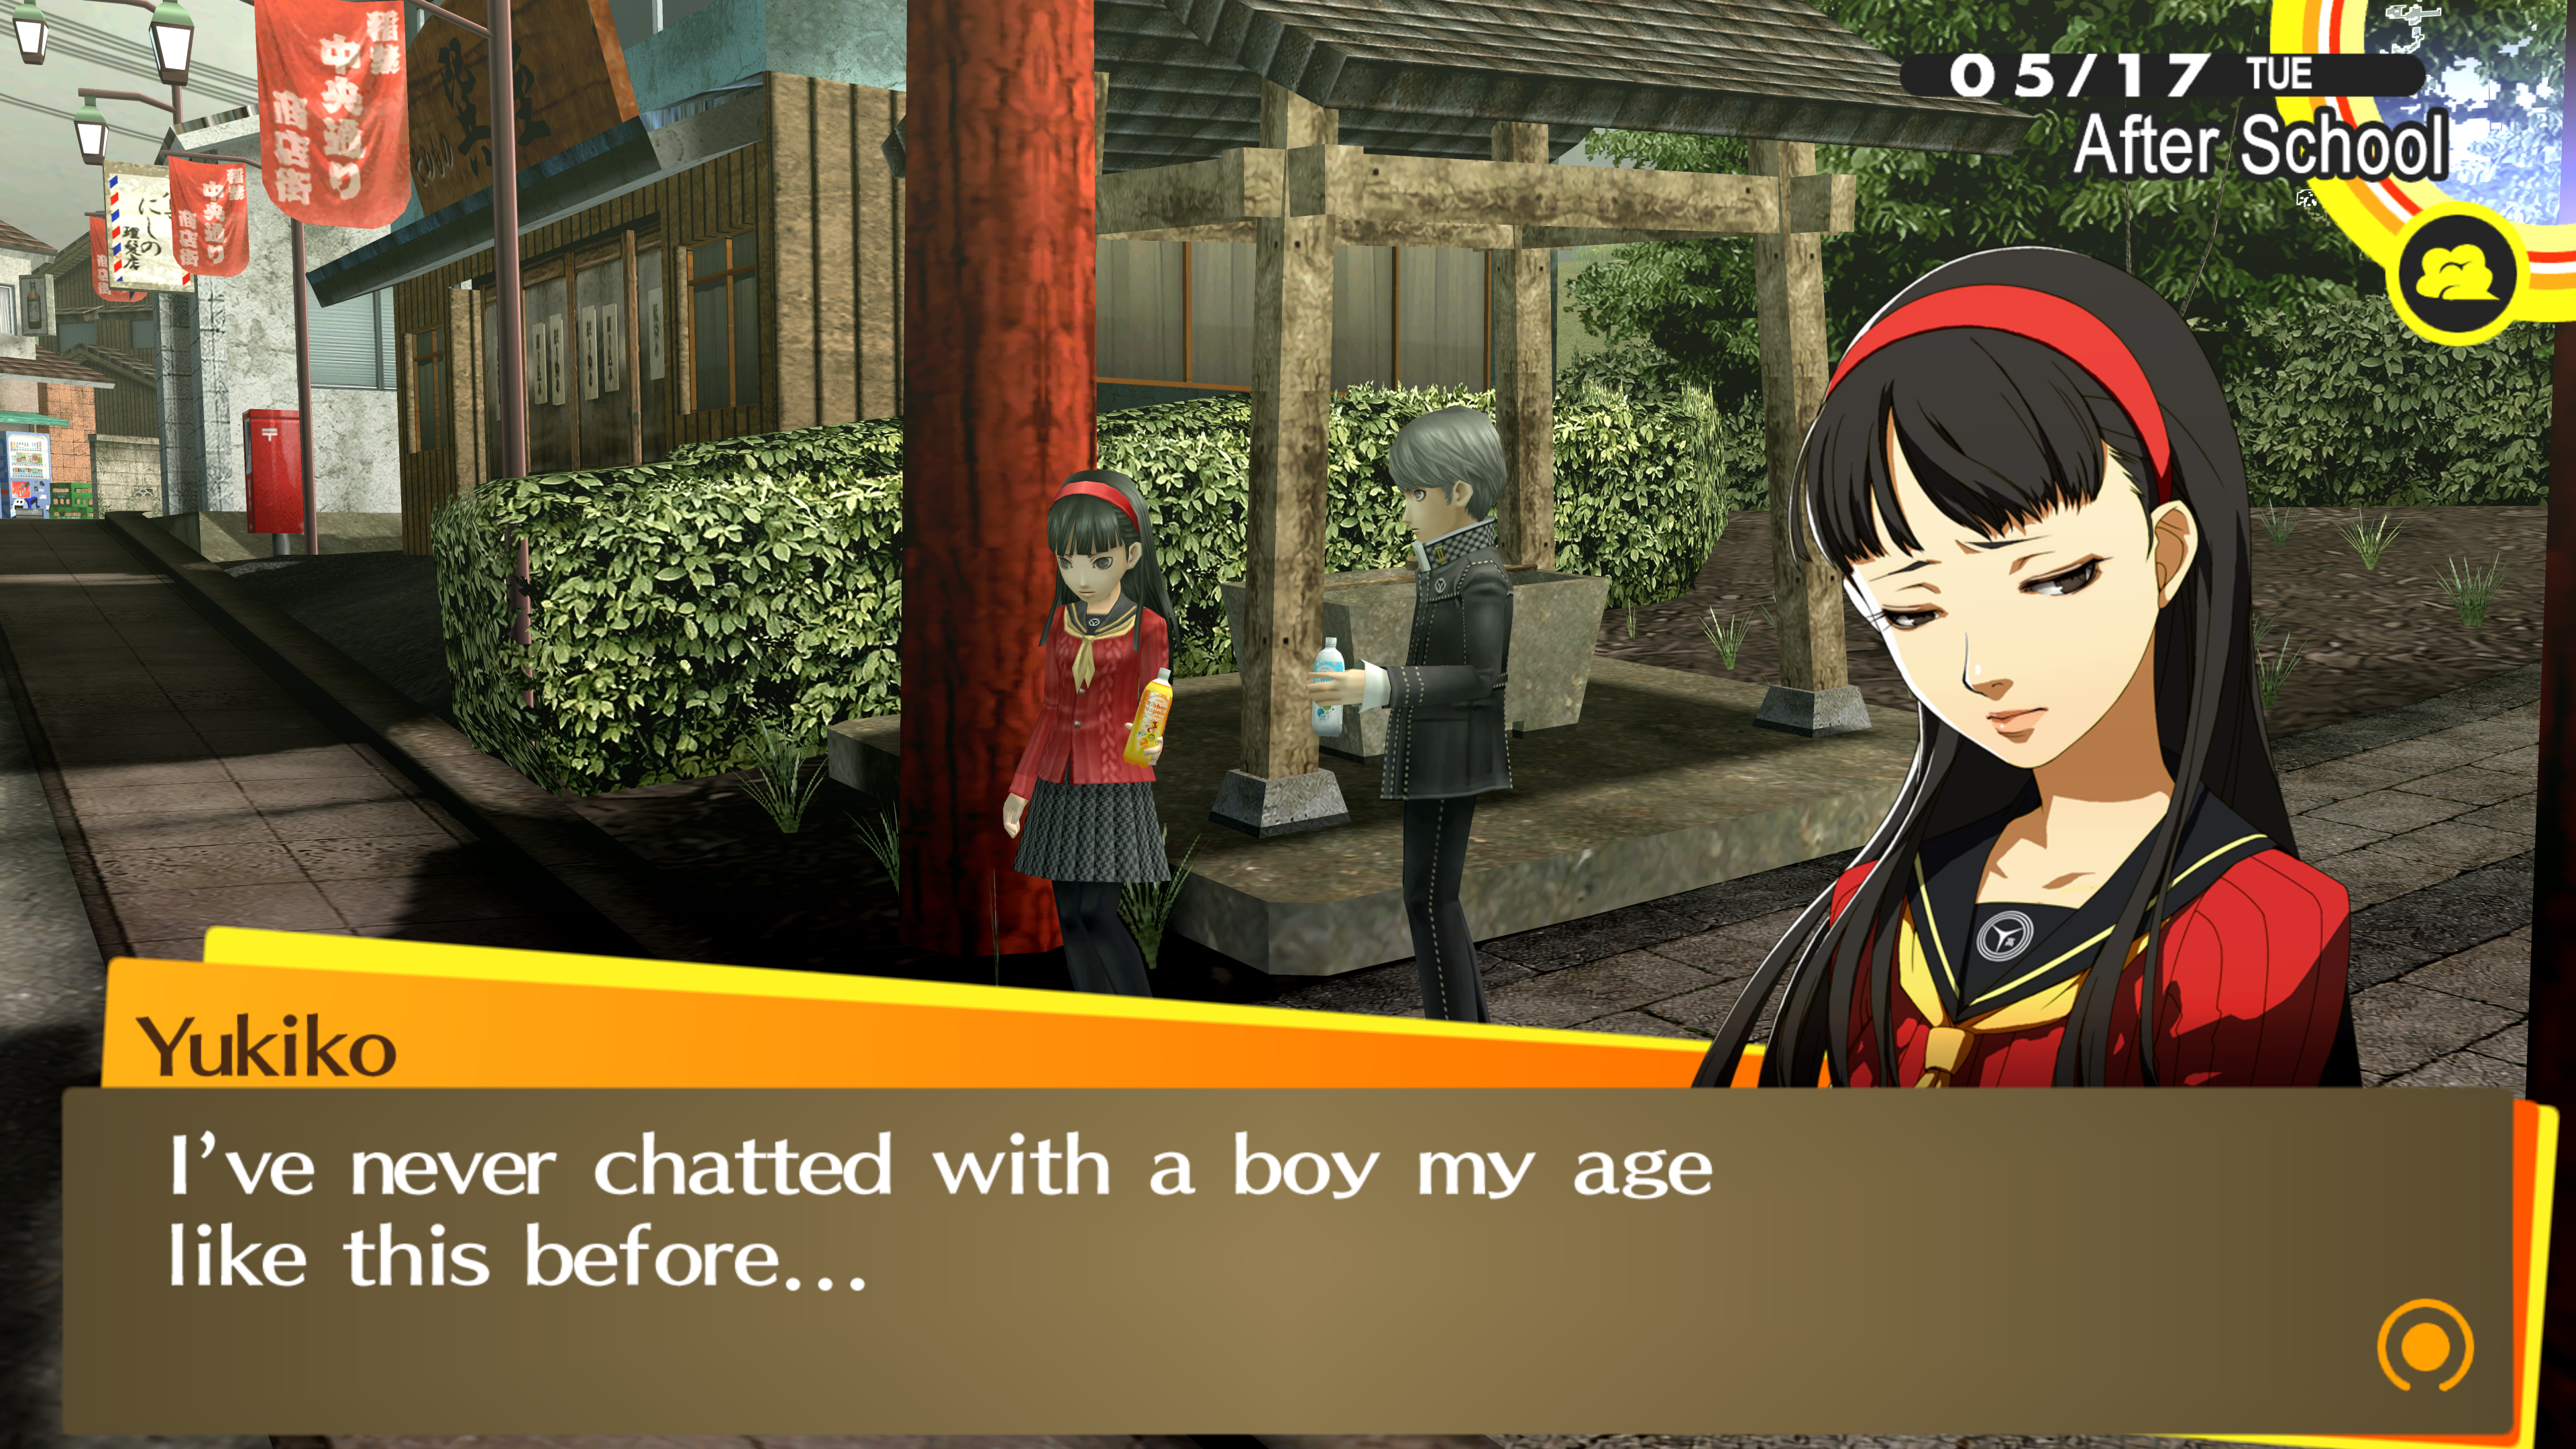 Persona 4 Golden Steam Port Announced, Released Immediately